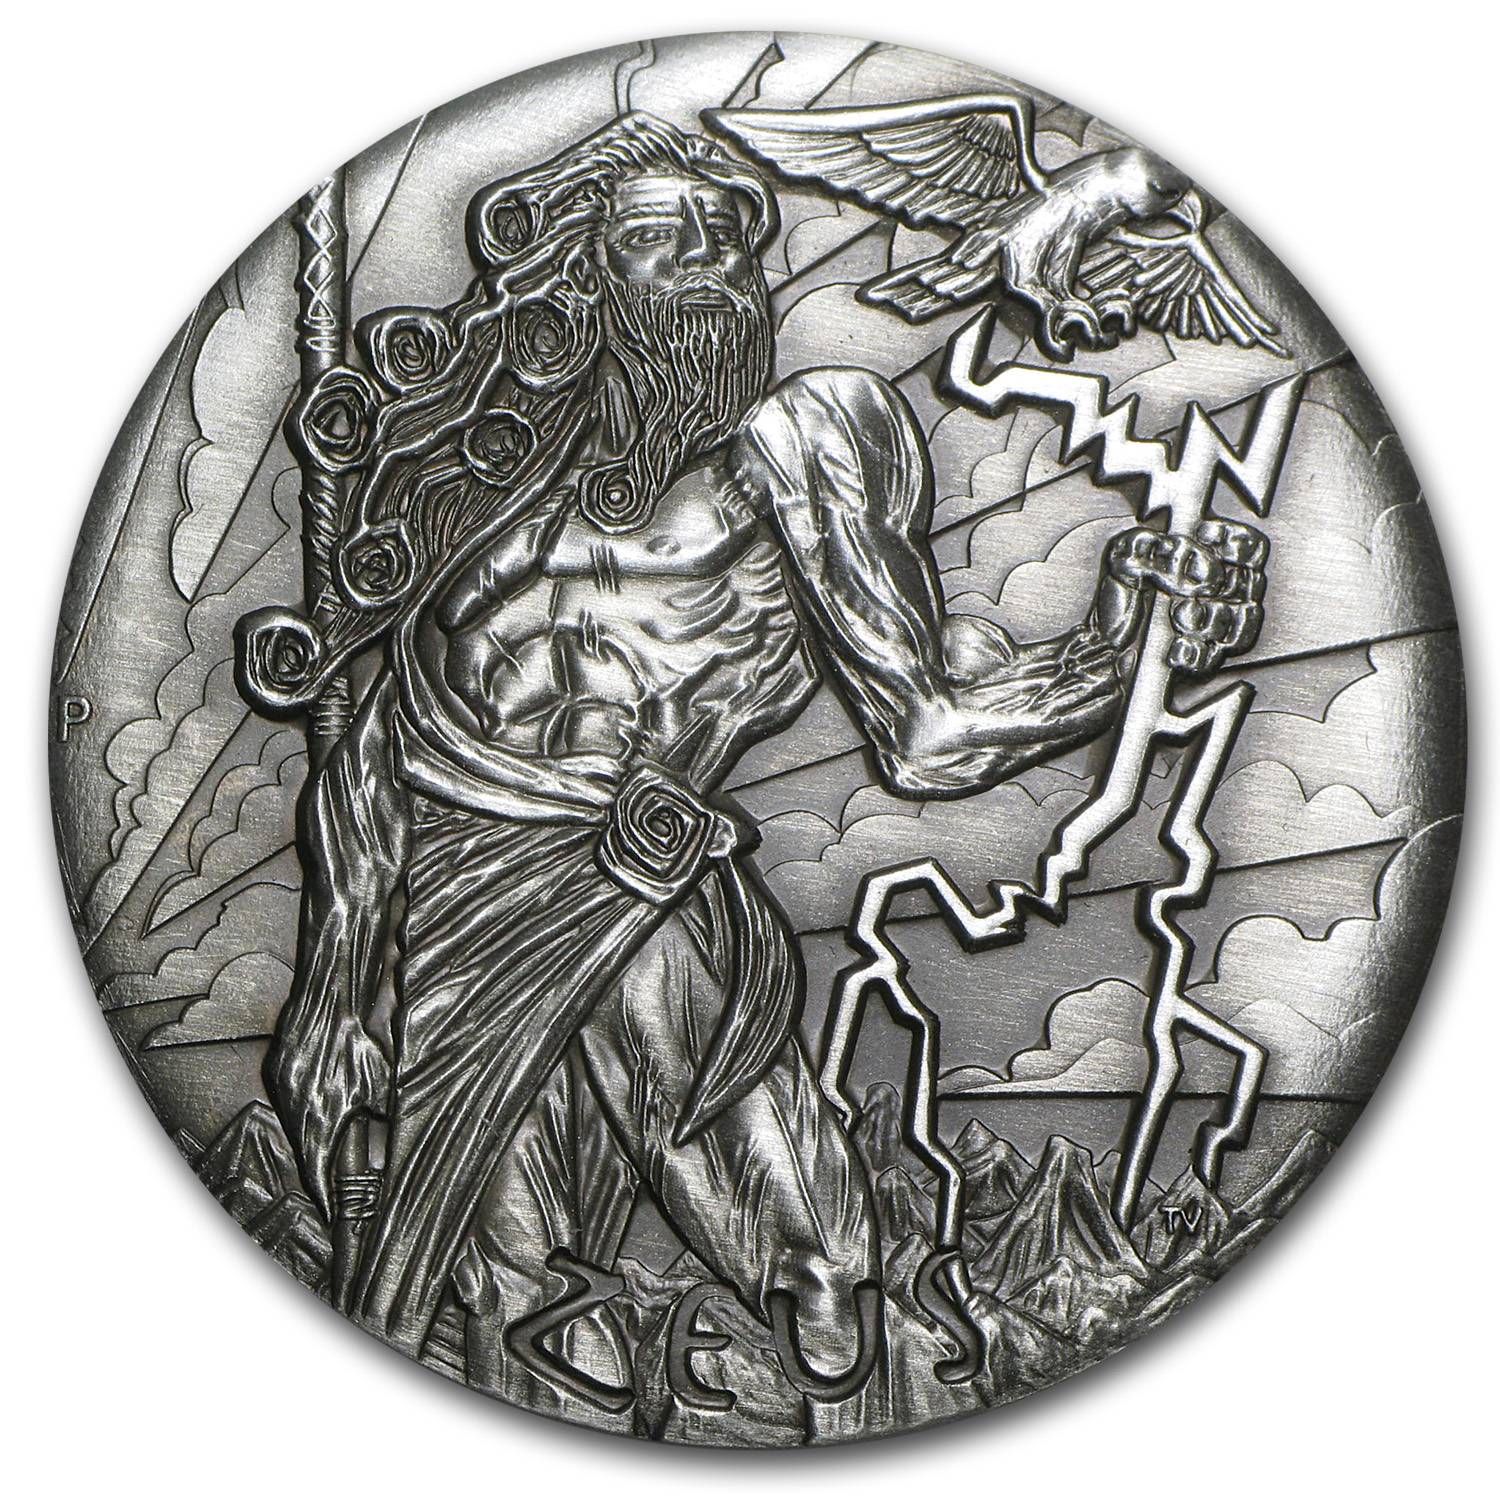 2014 Tuvalu 2 oz Silver Gods of Olympus Zeus BU (High Relief)